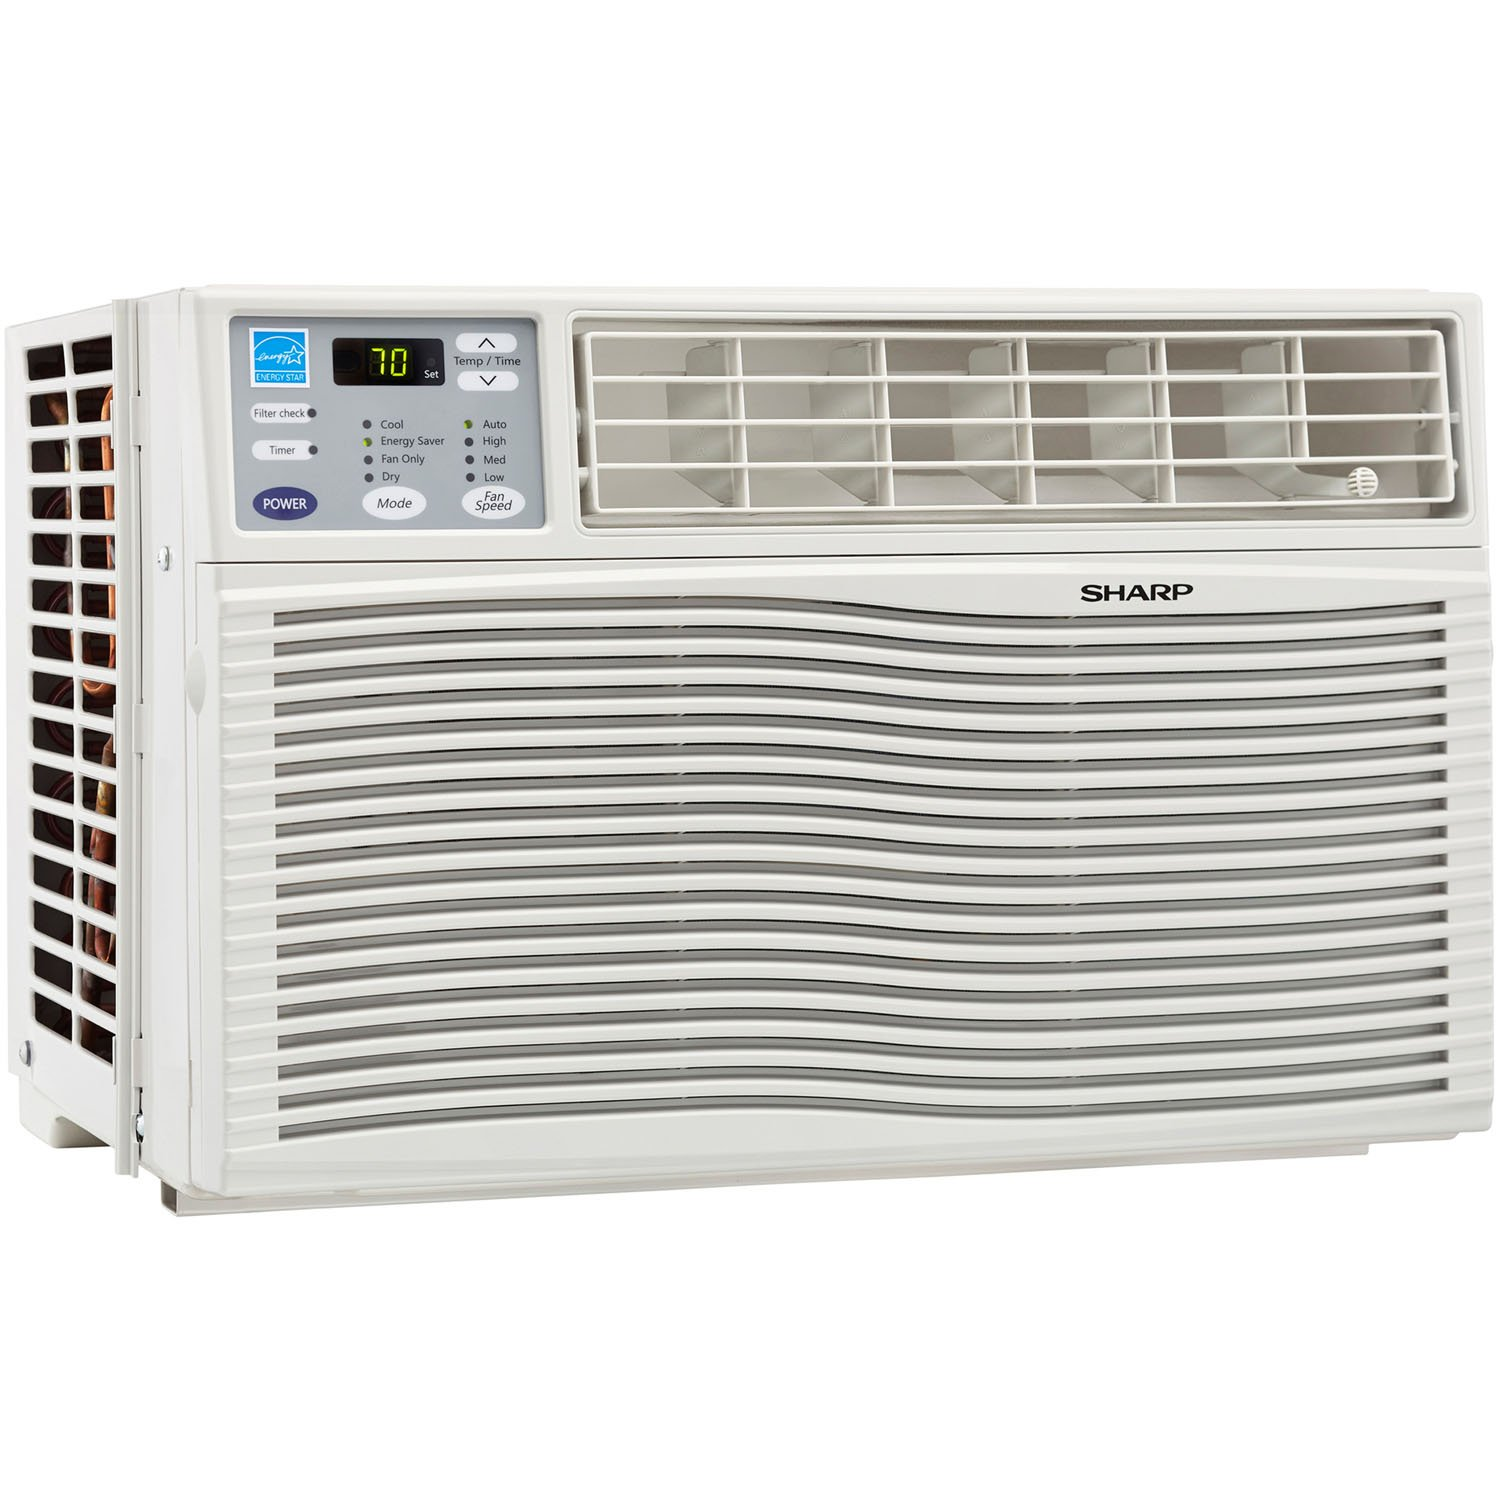 SHARP AFQ80VX Energy Star 8000 BTU Window-Mounted Air Conditioner with Rest Easy Remote Control, 110-volt: Amazon.es: Hogar